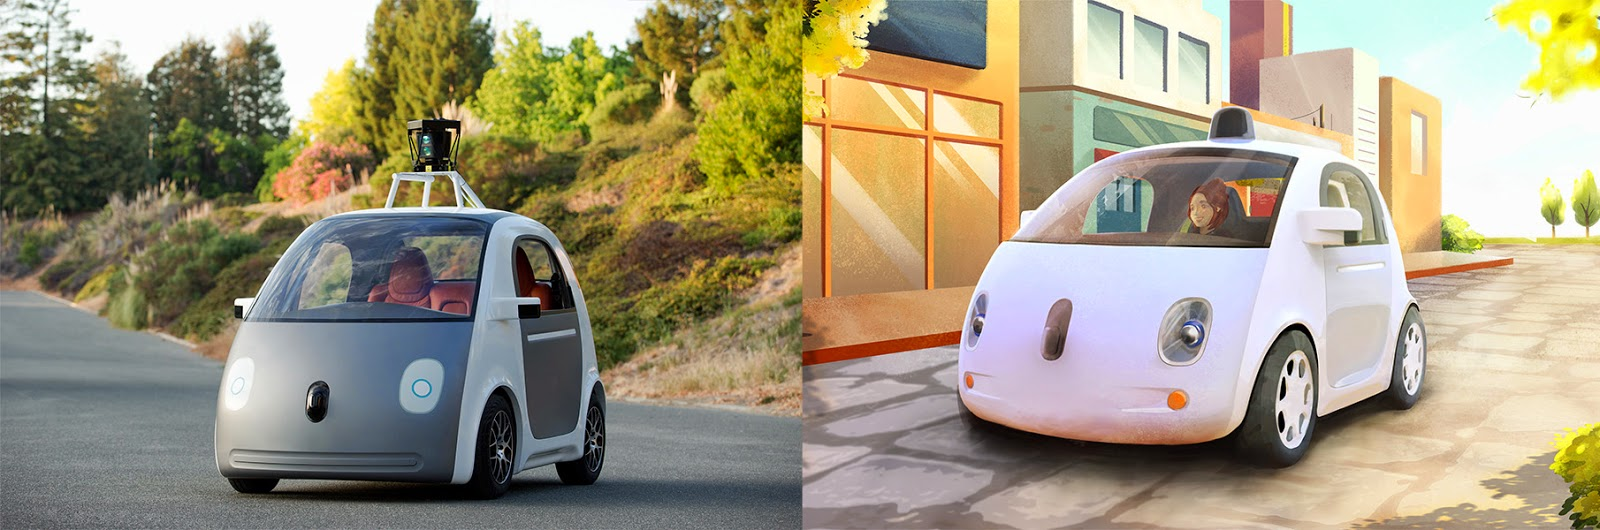 Google's new self-driving car prototype can't exceed 25 mph. (Source: Google)